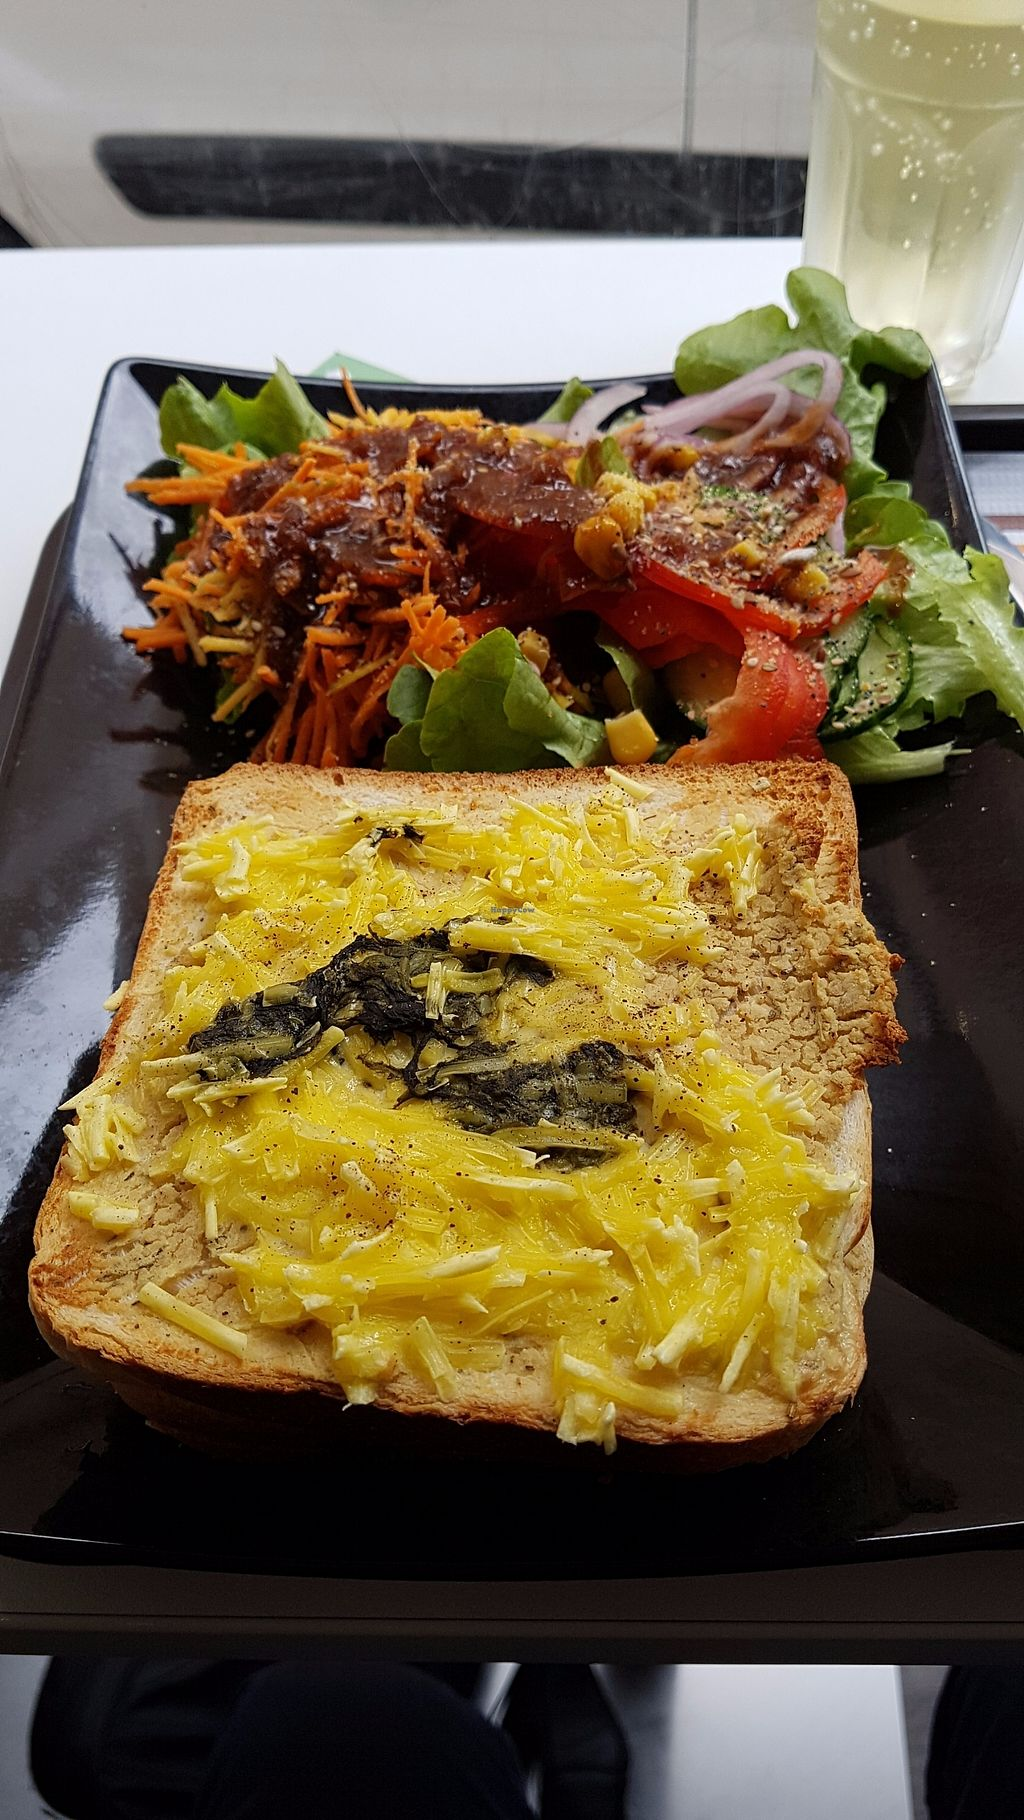 """Photo of Veggie Corner  by <a href=""""/members/profile/JonJon"""">JonJon</a> <br/>Croc-monsieur with ricotta cheese and spinach <br/> October 8, 2017  - <a href='/contact/abuse/image/90289/313259'>Report</a>"""